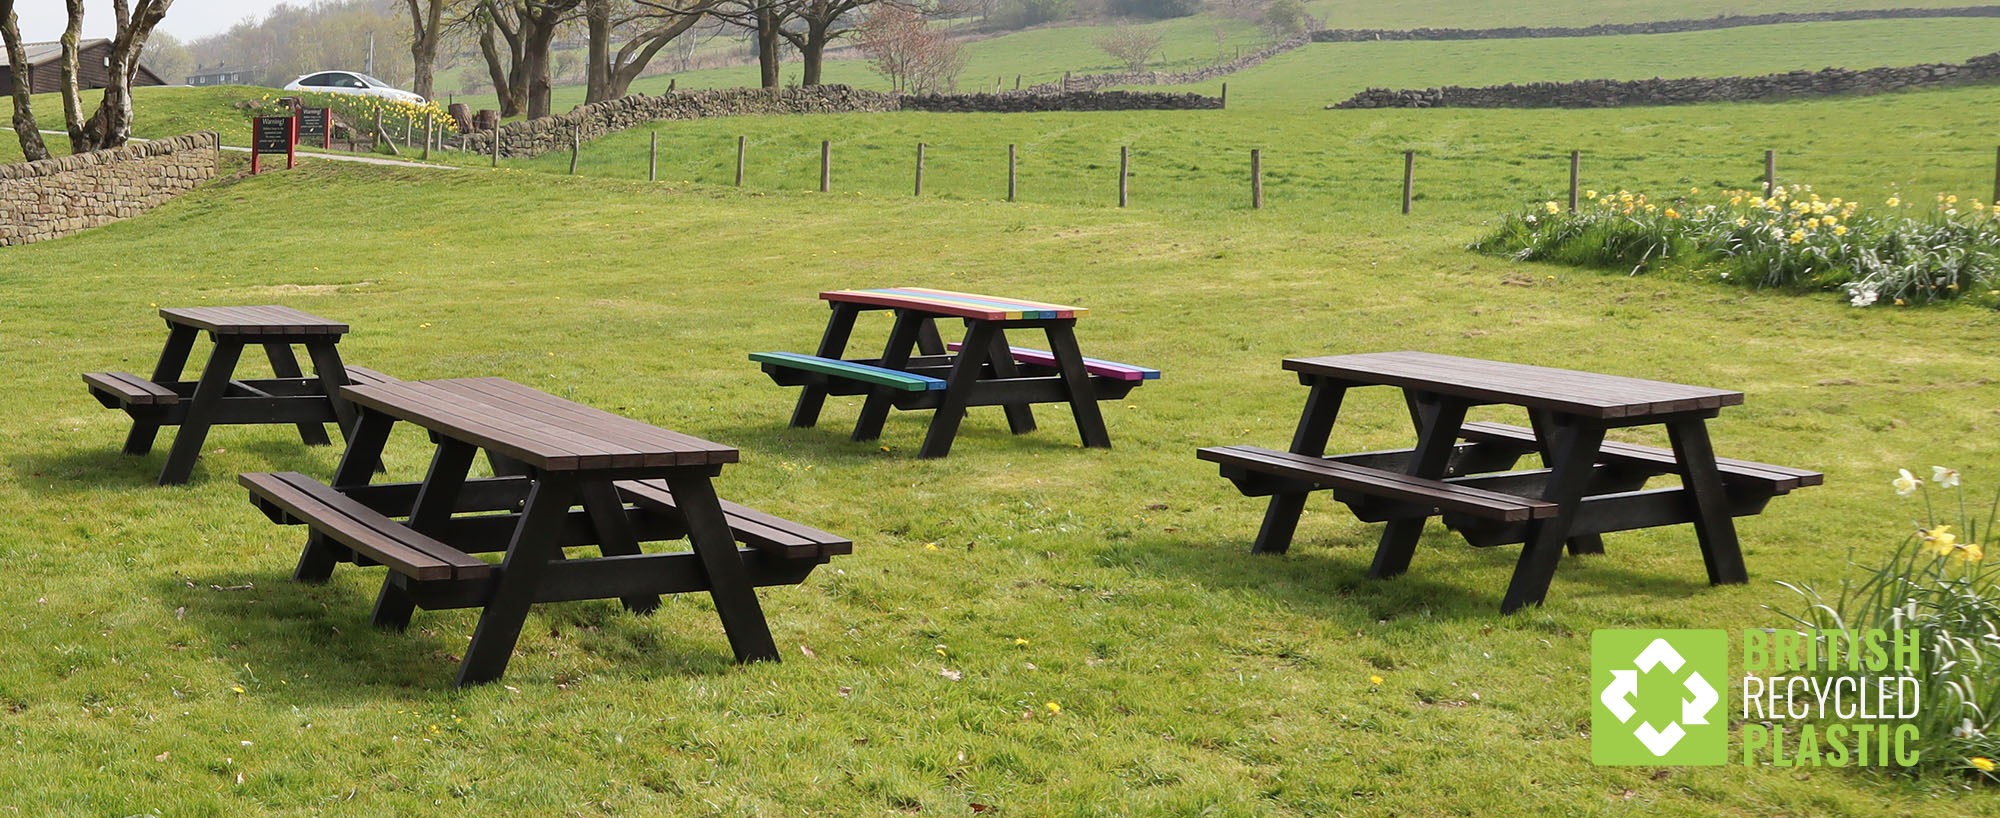 All British Recycled Plastic picnic tables are guaranteed for 25 years